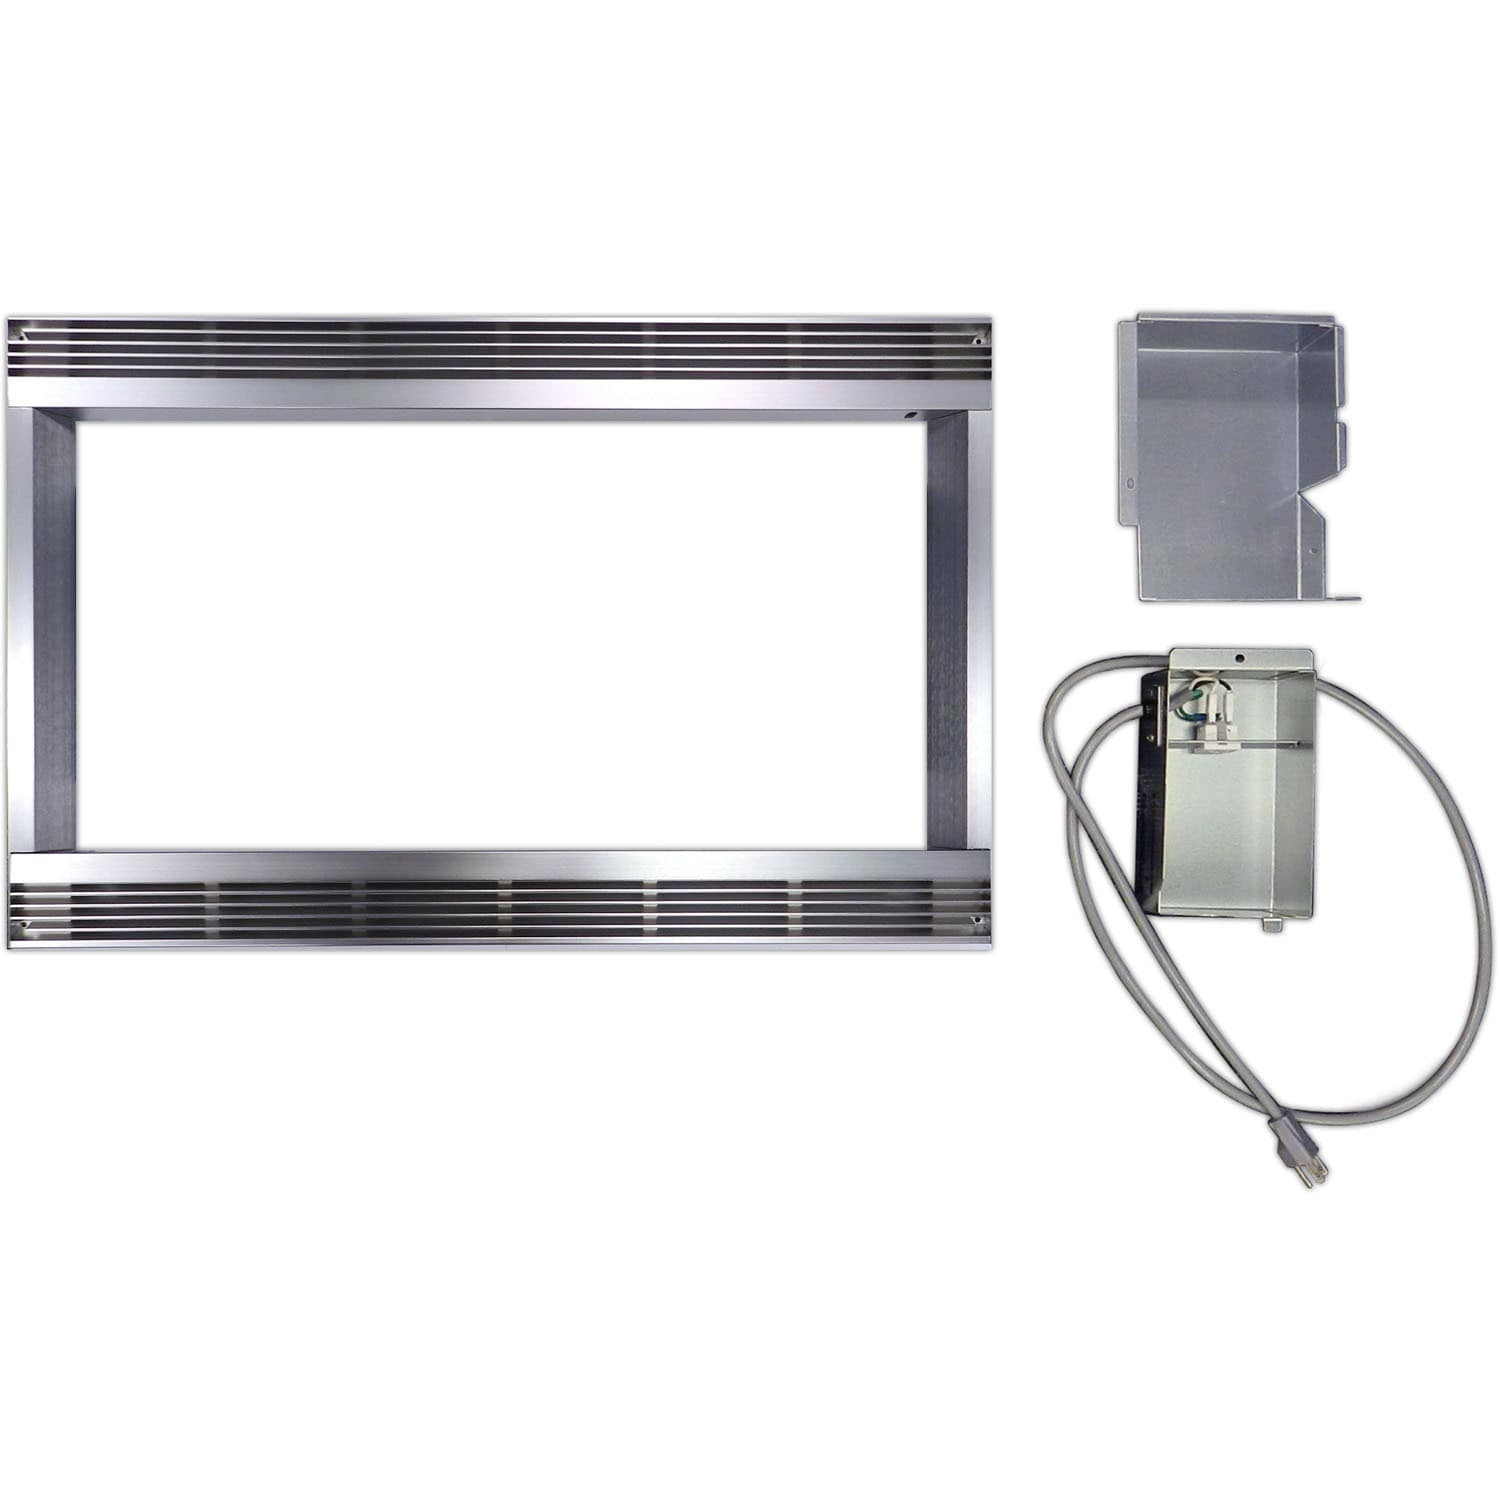 Stainless Steel (Silver) 27-inch Built-in Trim Kit for Sh...